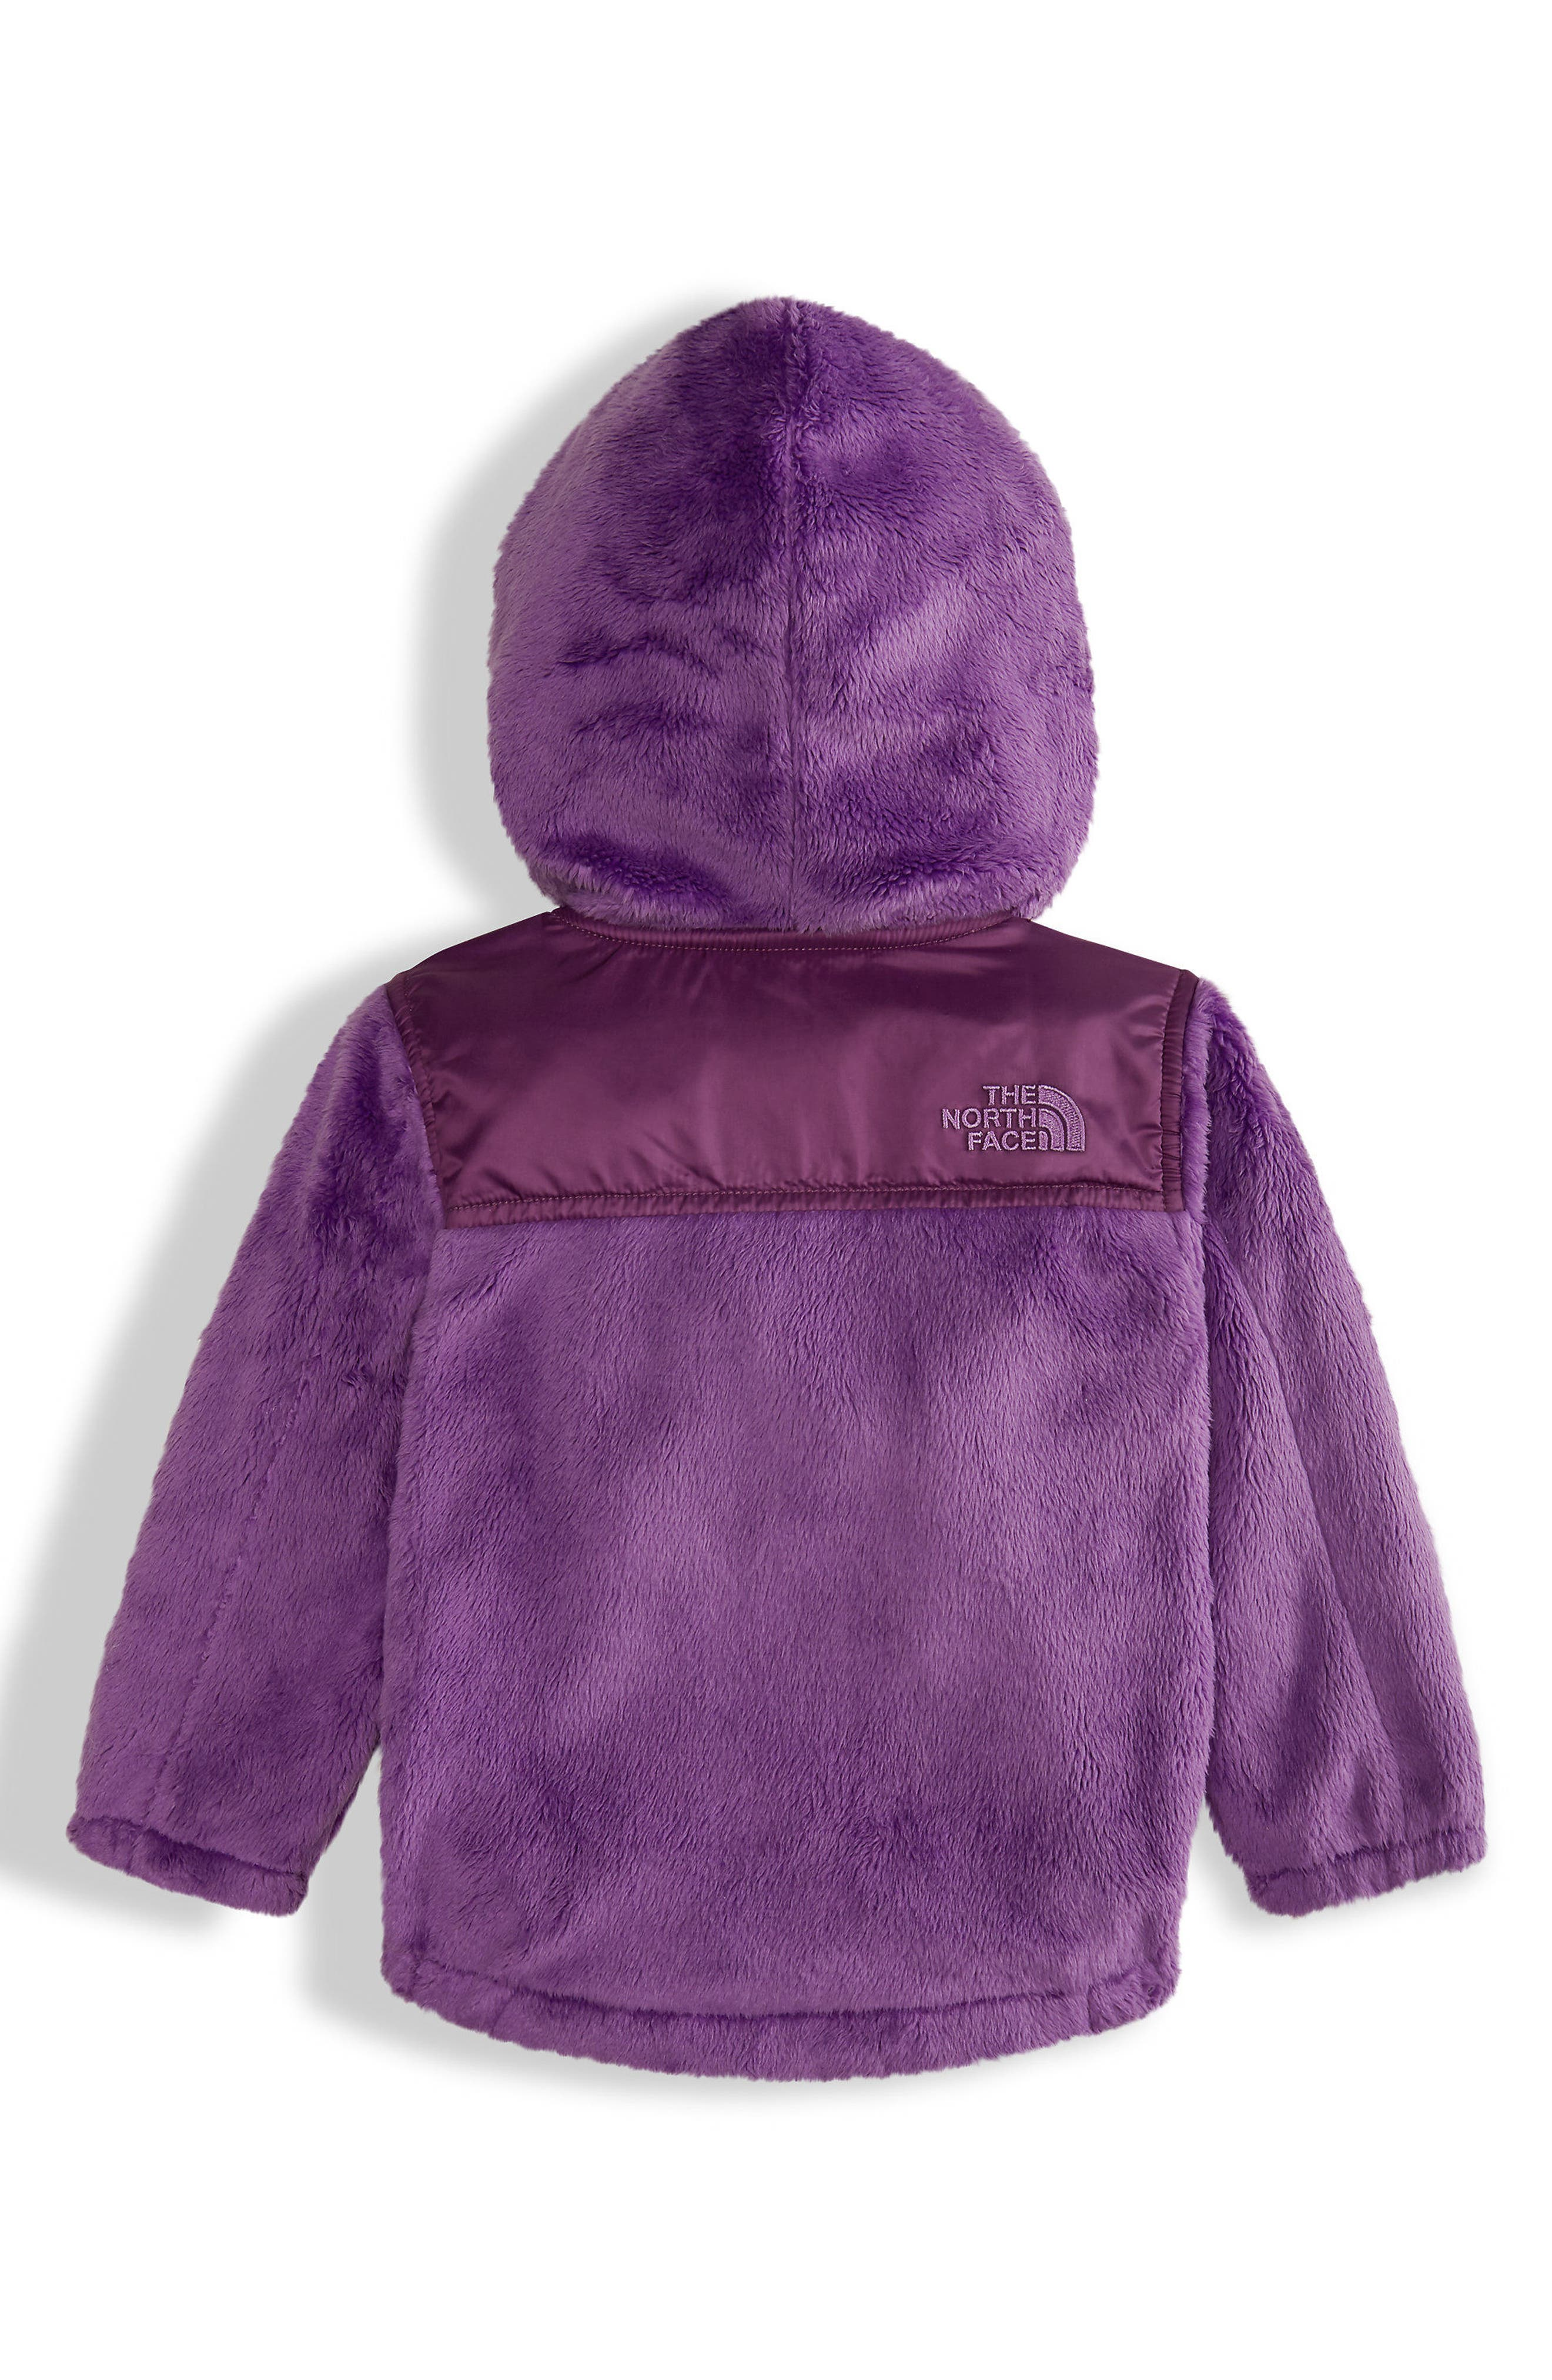 'Oso' Fleece Hooded Jacket,                             Main thumbnail 1, color,                             511